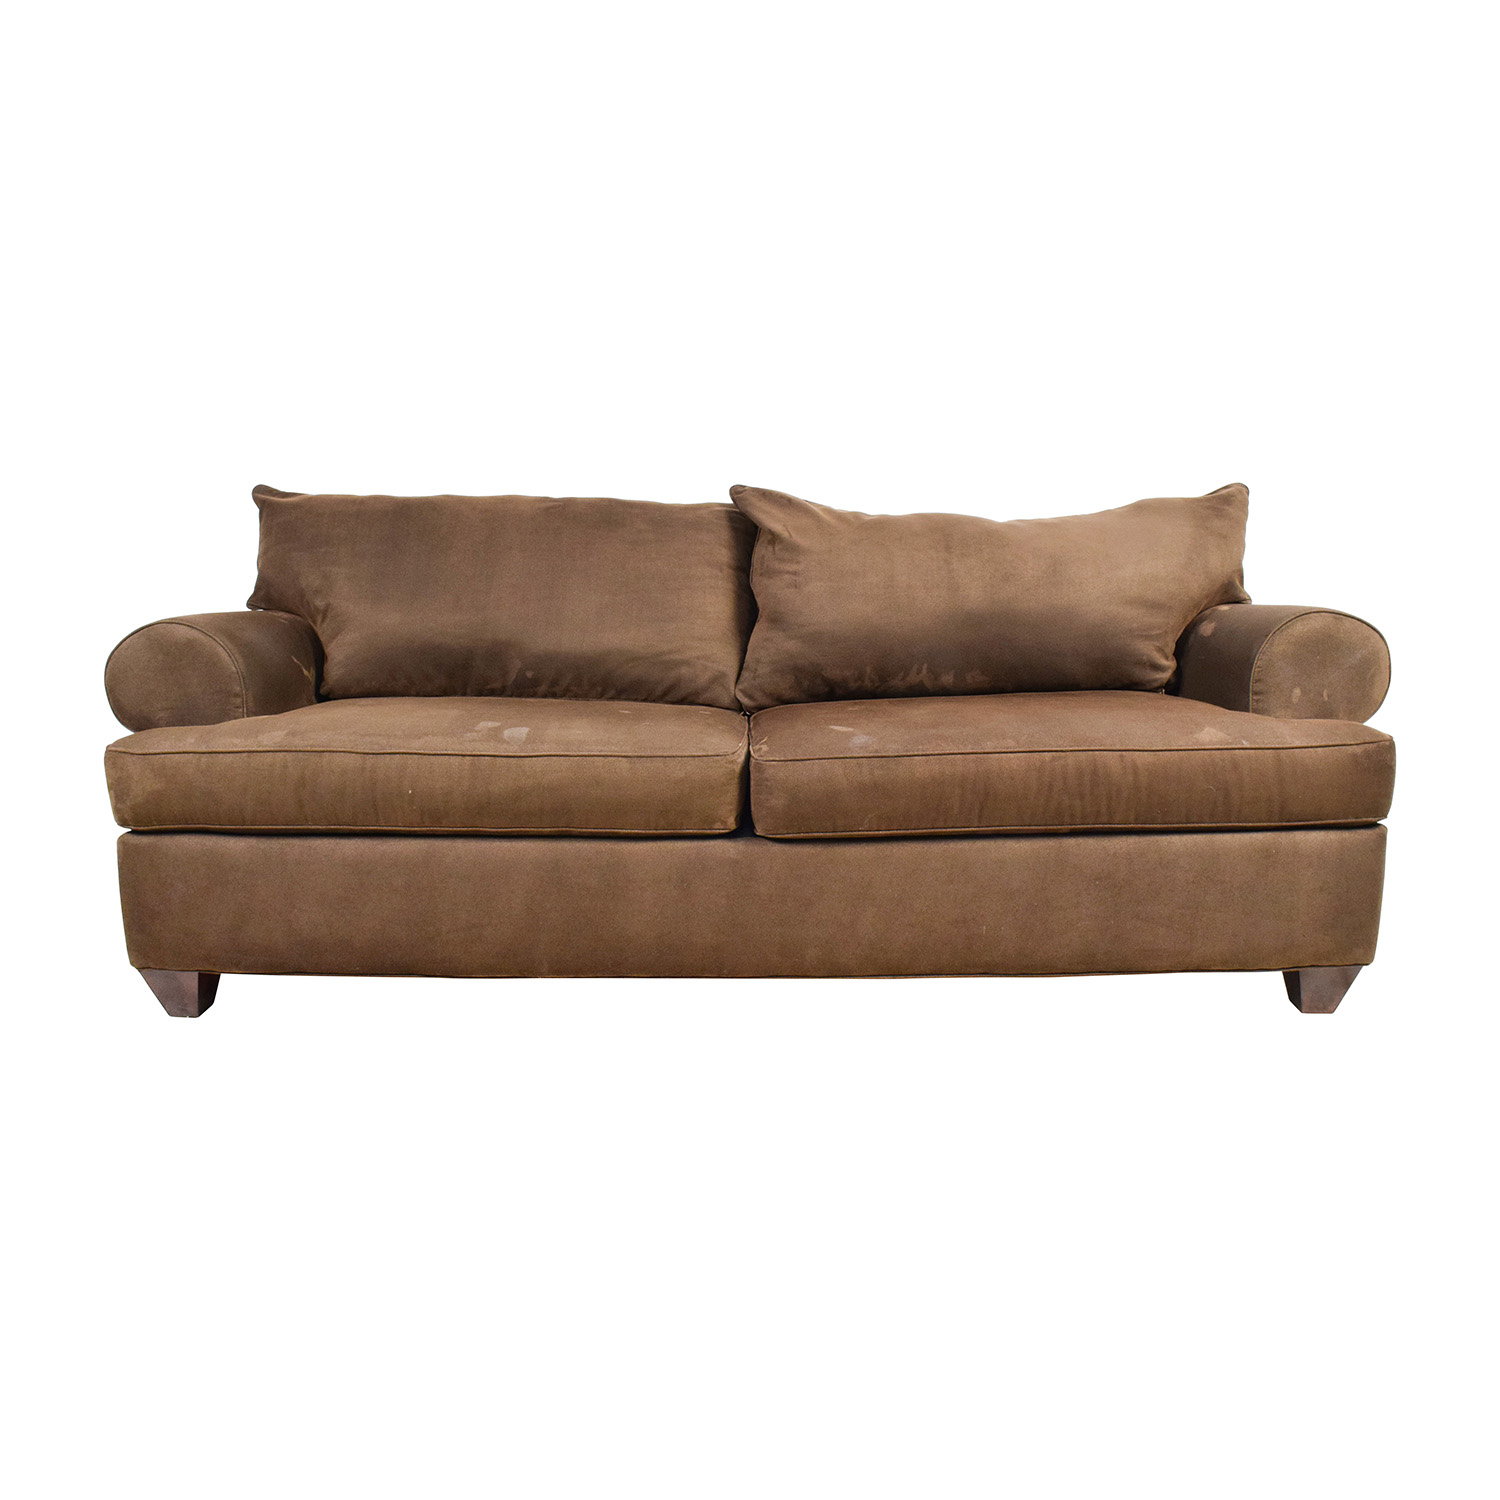 Large Maroon Brown Two Cushion Sofa Classic Sofas